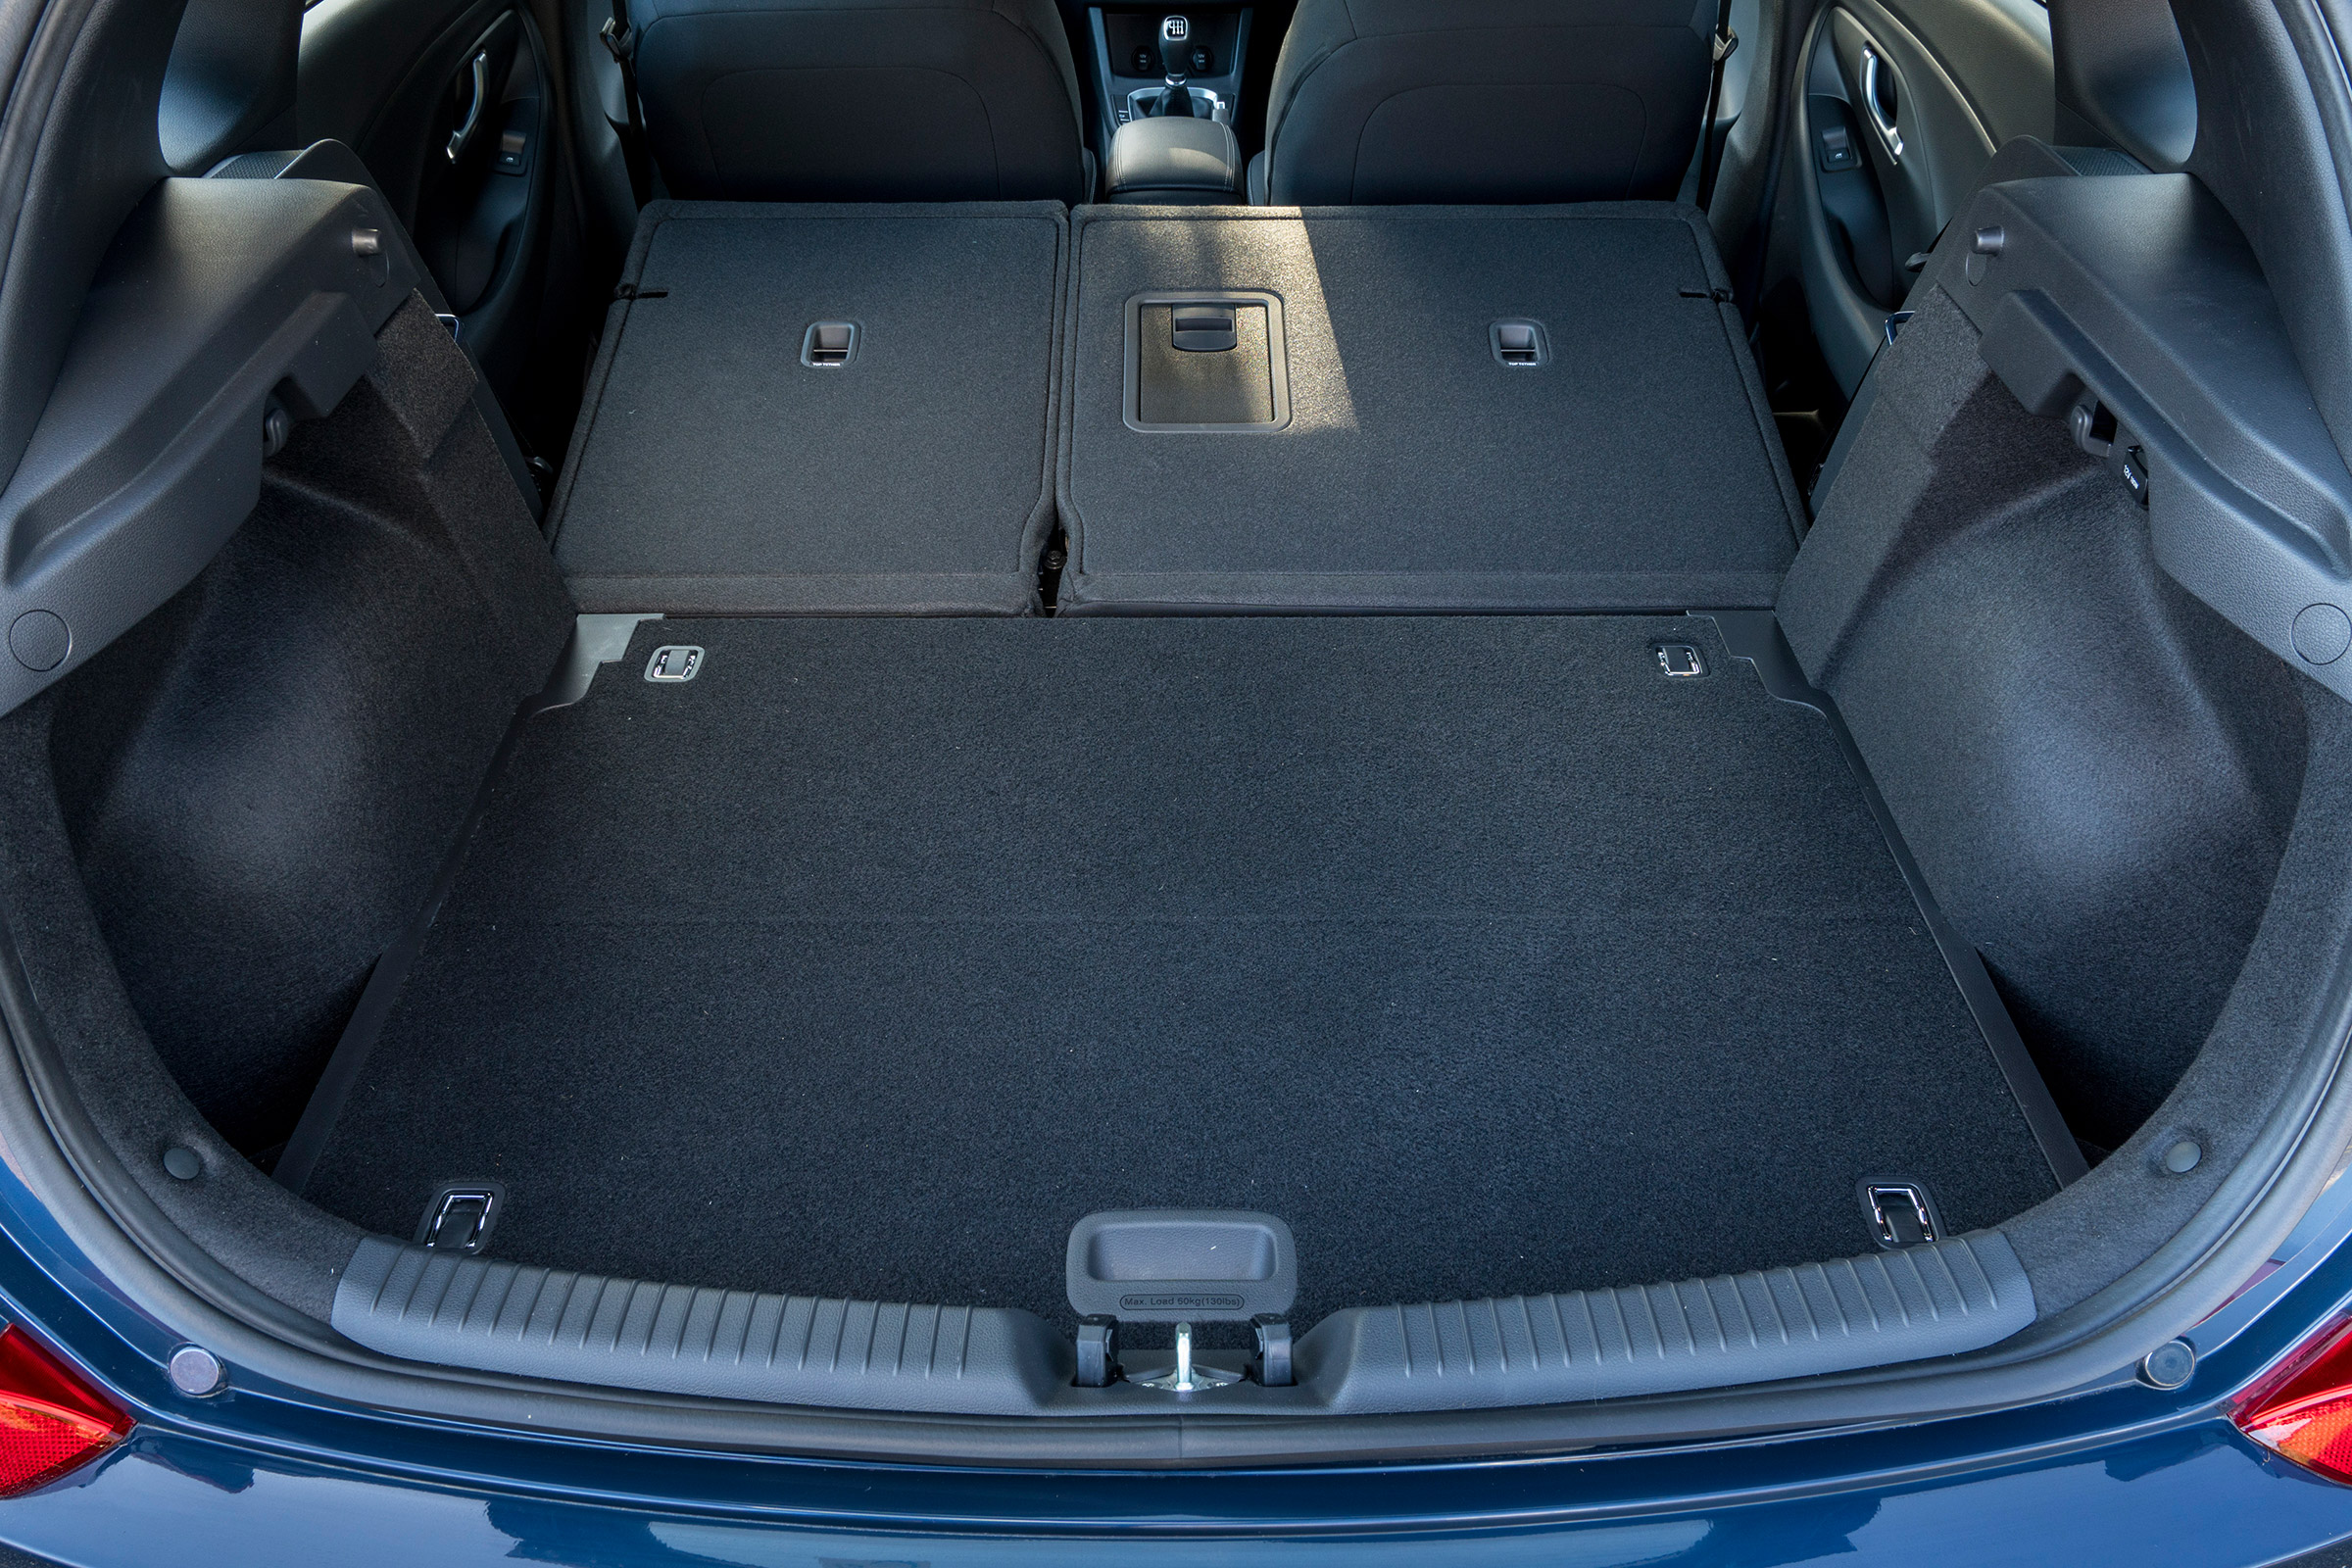 2017 Hyundai I30 Interior View Cargo Seats Folded (Photo 12 of 23)